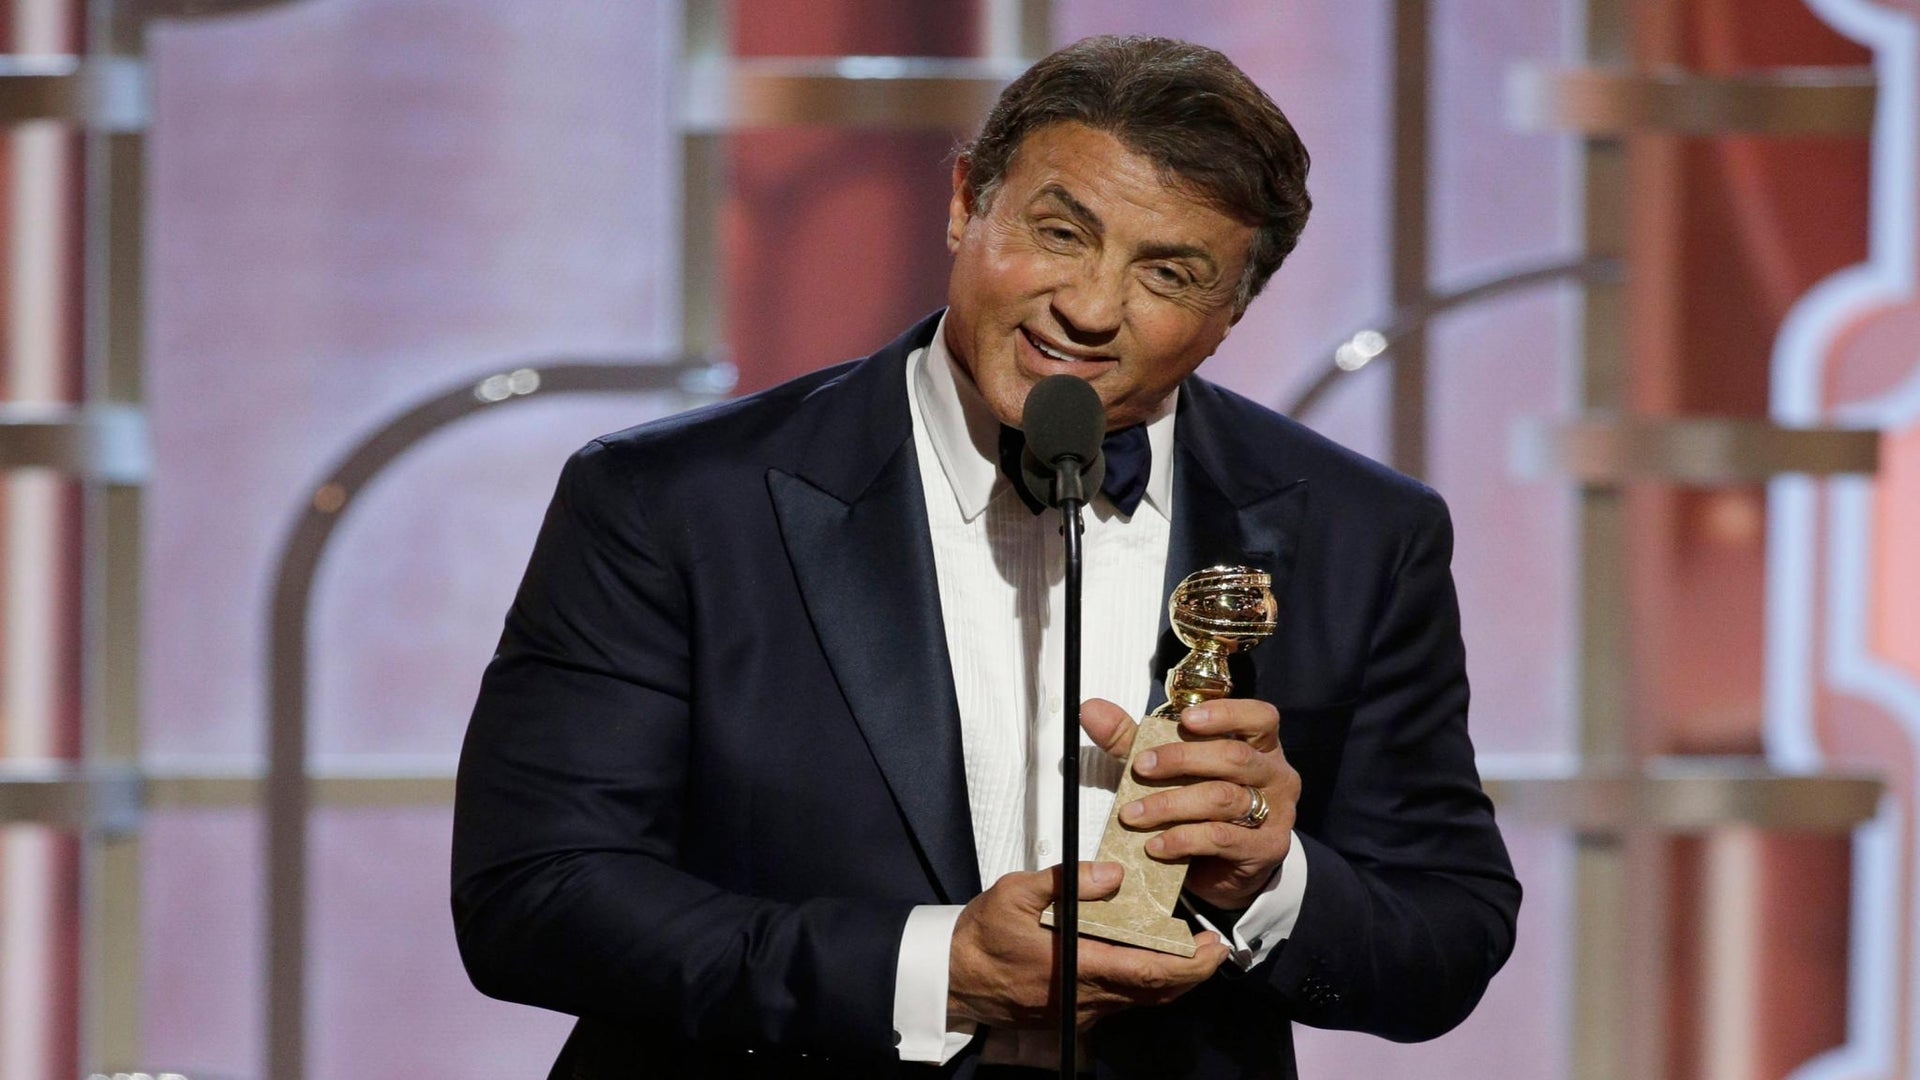 Huh? Sylvester Stallone Forgets to Thank 'Creed' Director While Accepting Golden Globe